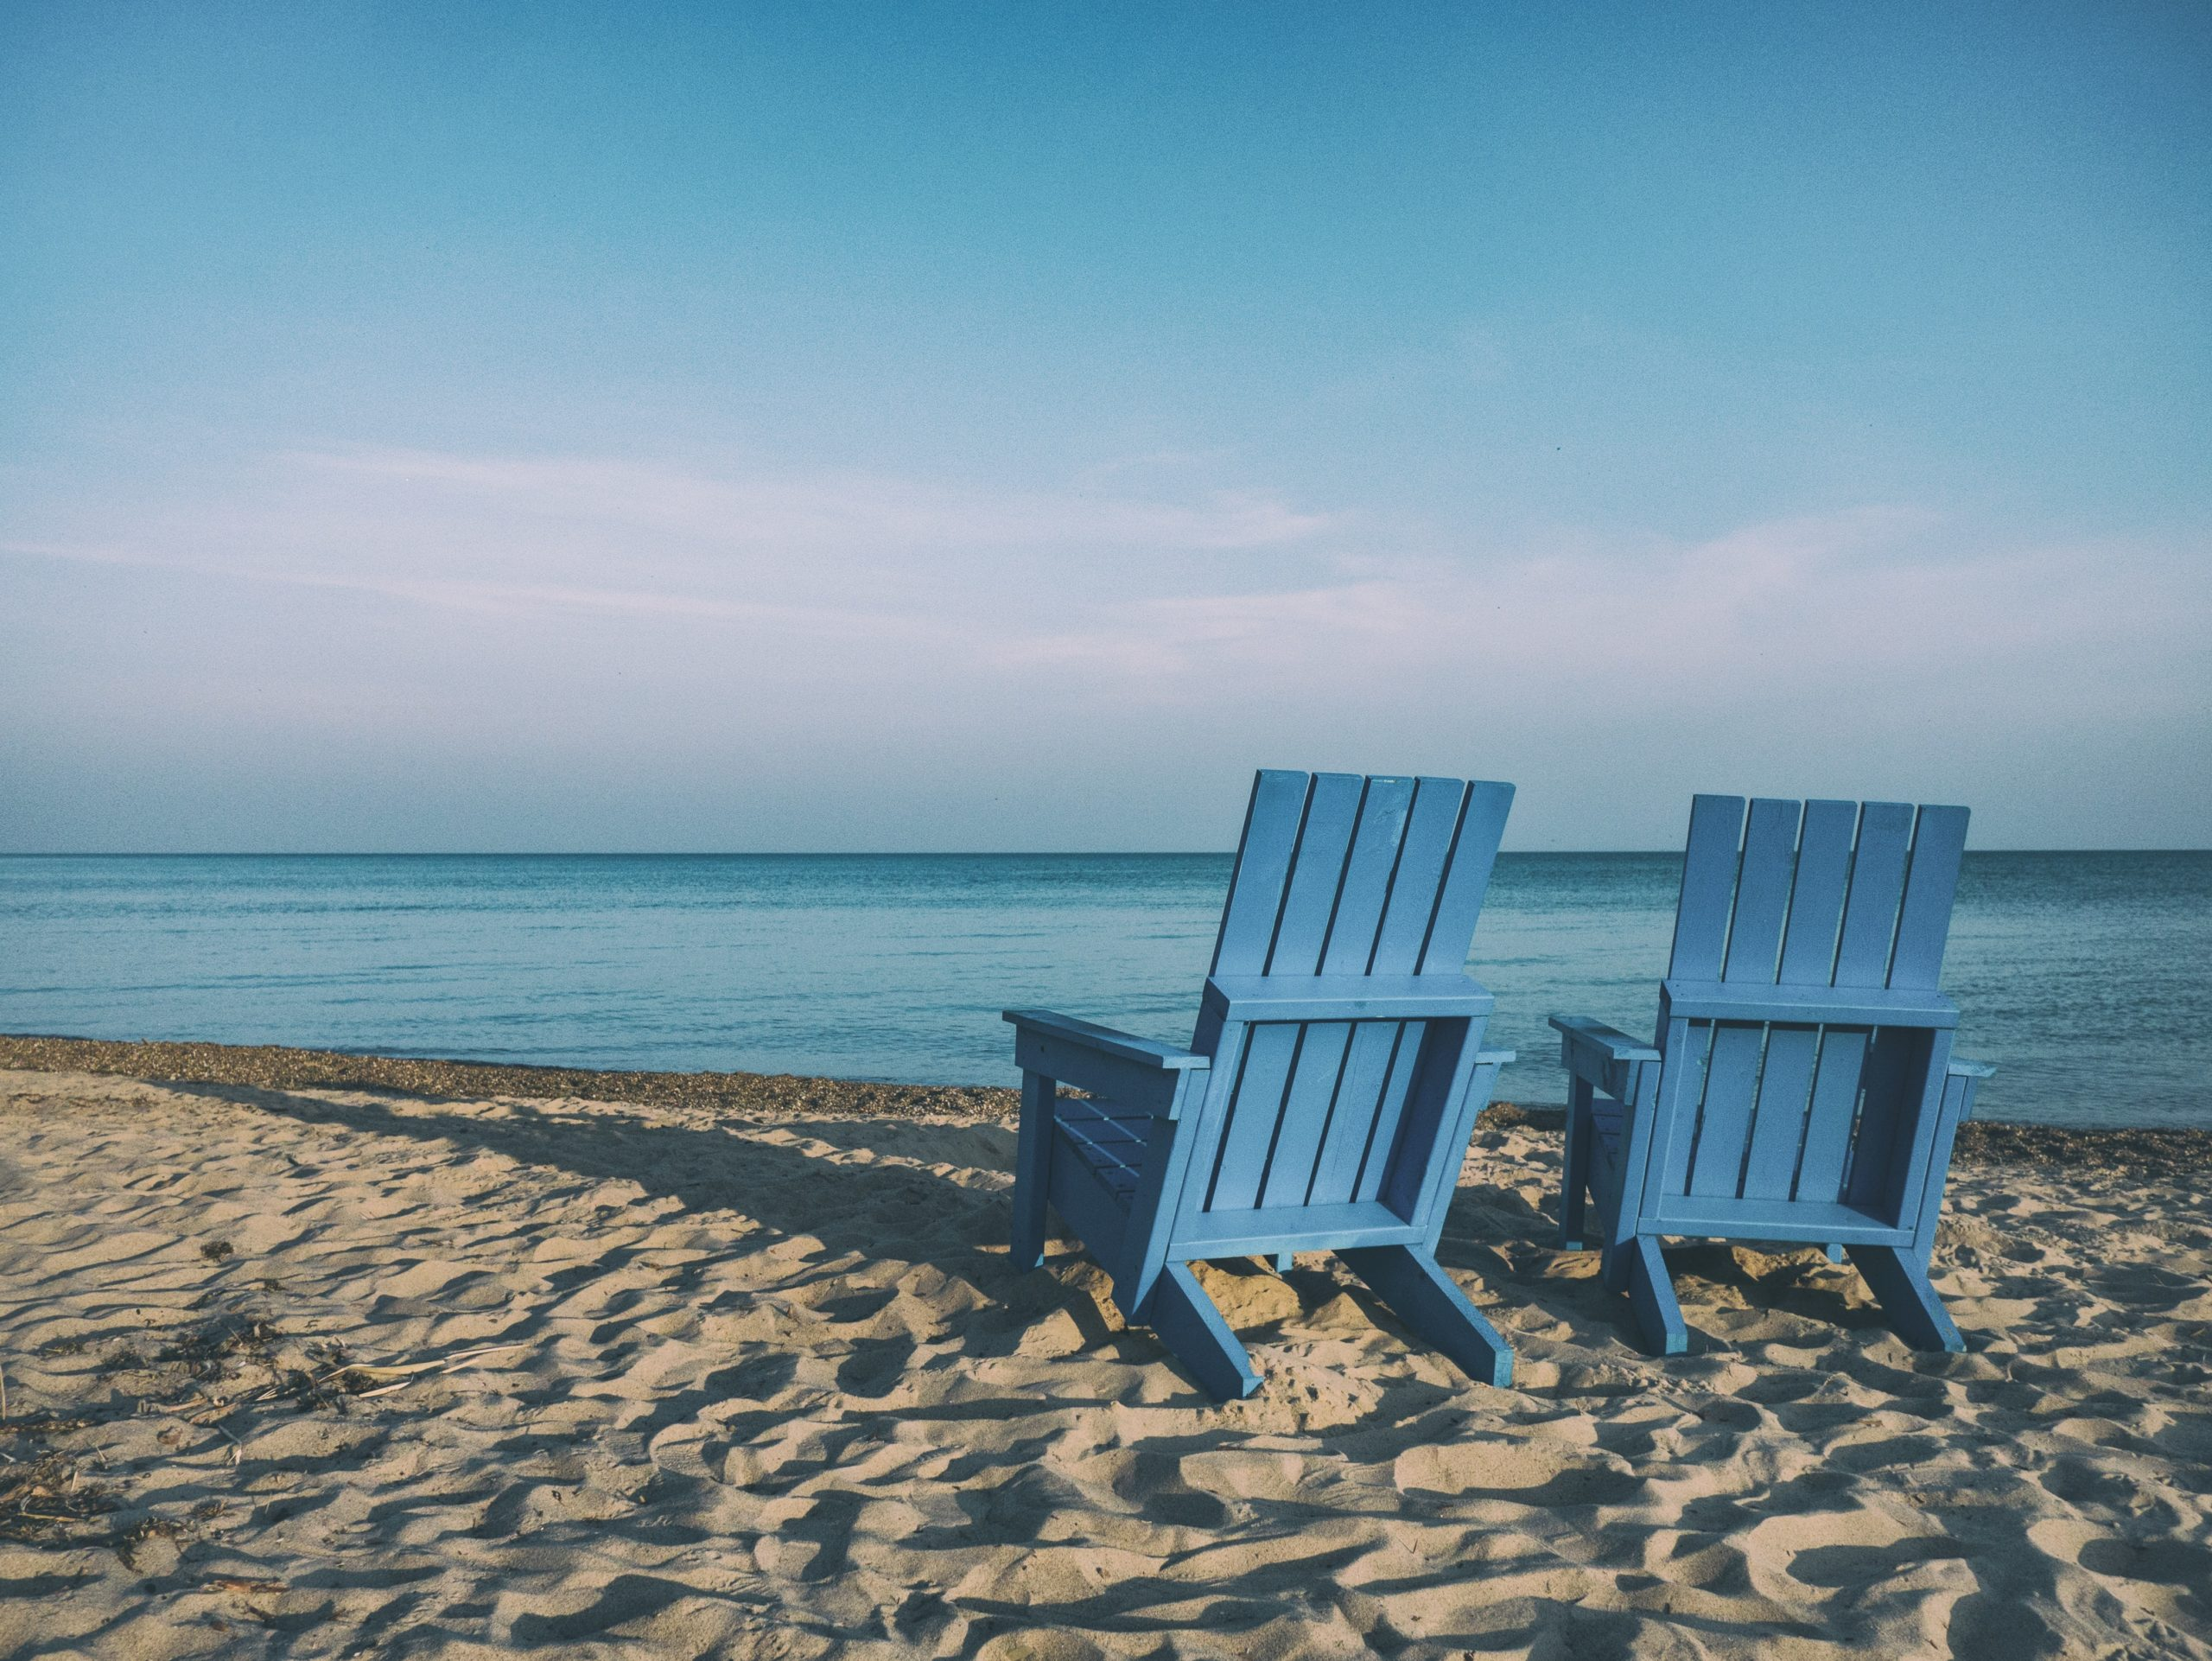 Two Empty chairs on the beach